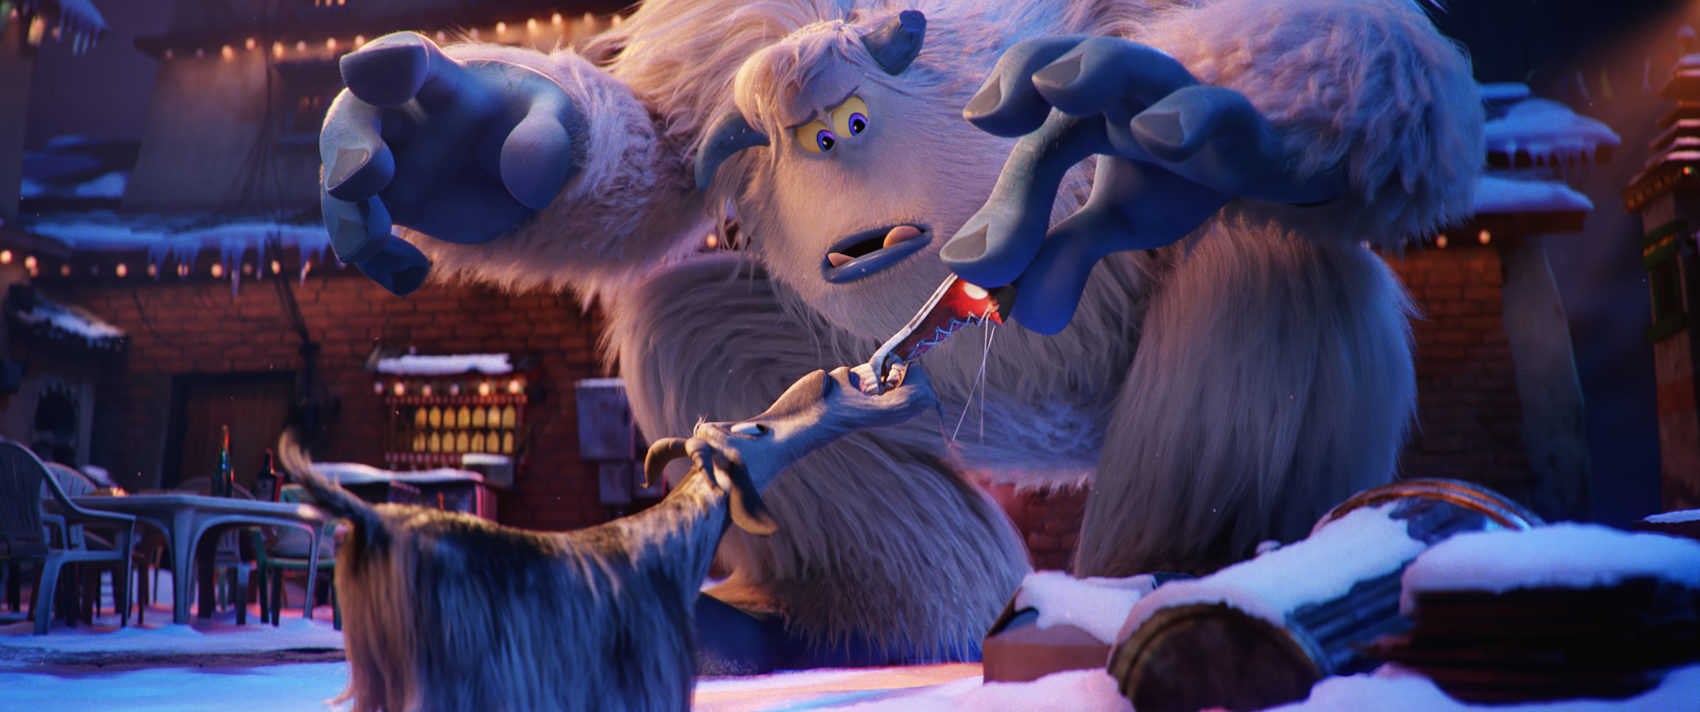 """Goat and Migo voiced by Channing Tatum in a still from the new animated film """"Smallfoot."""" (Courtesy of Warner Bros. Pictures)"""